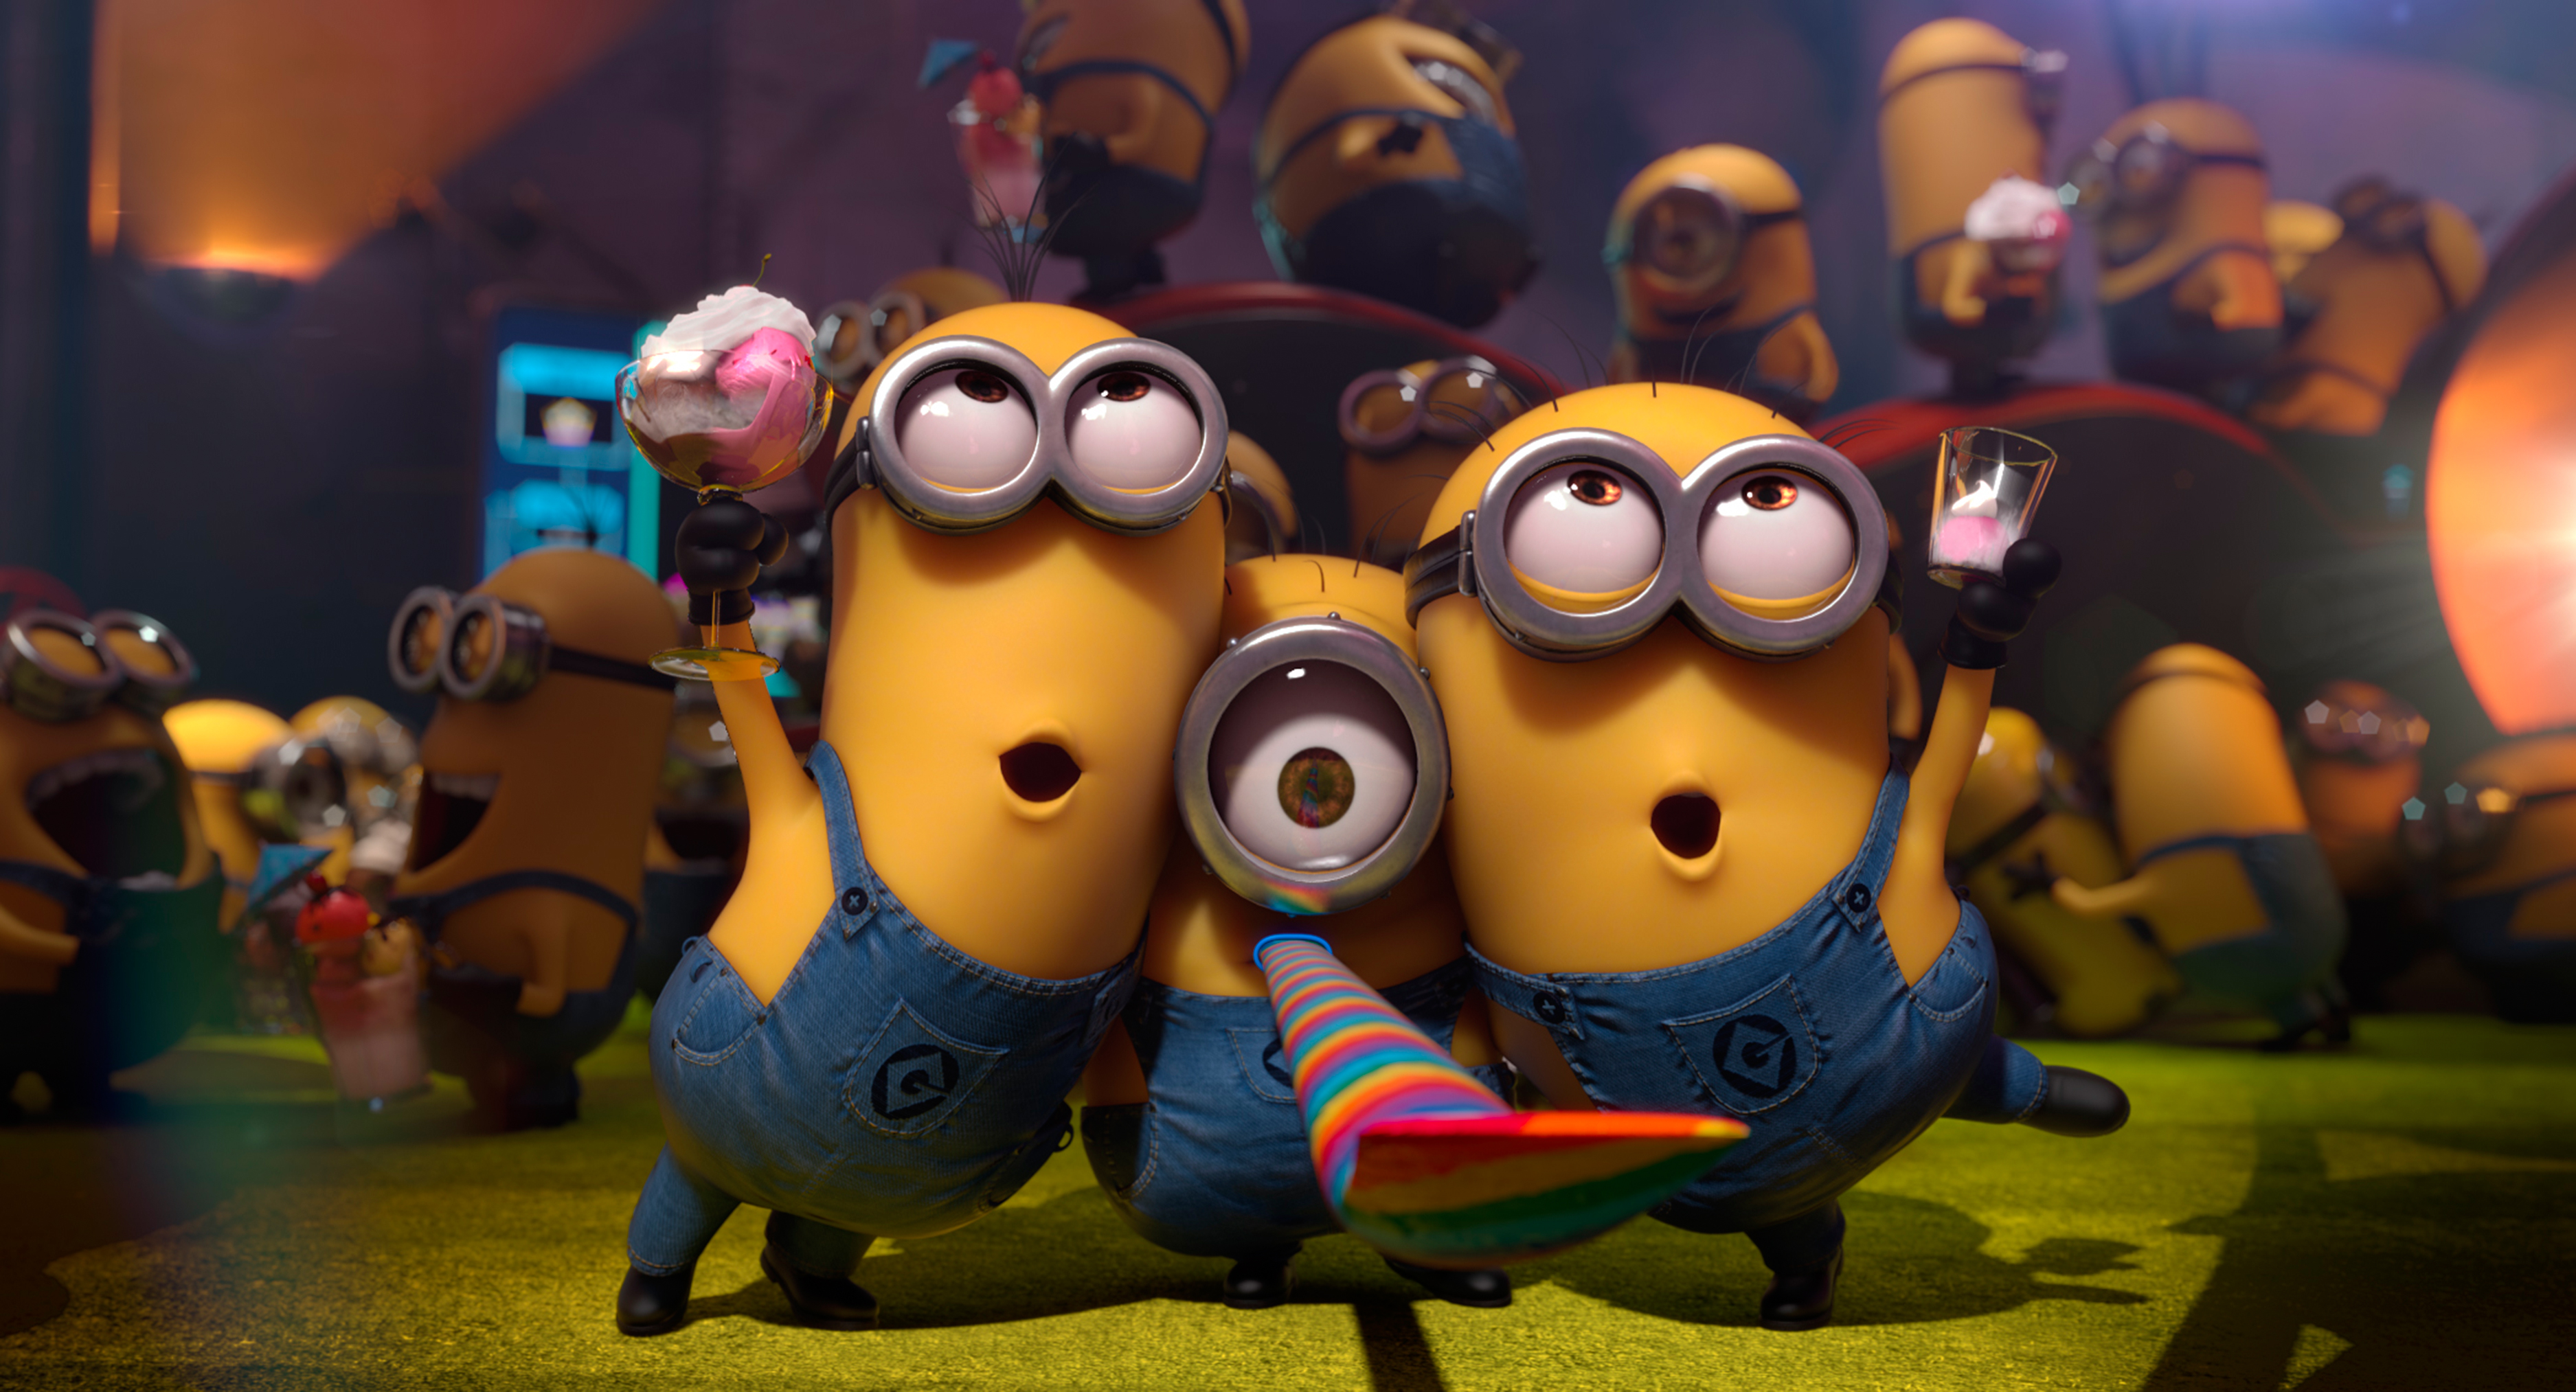 Cute Minion Wallpapers HD for Desktop (5)